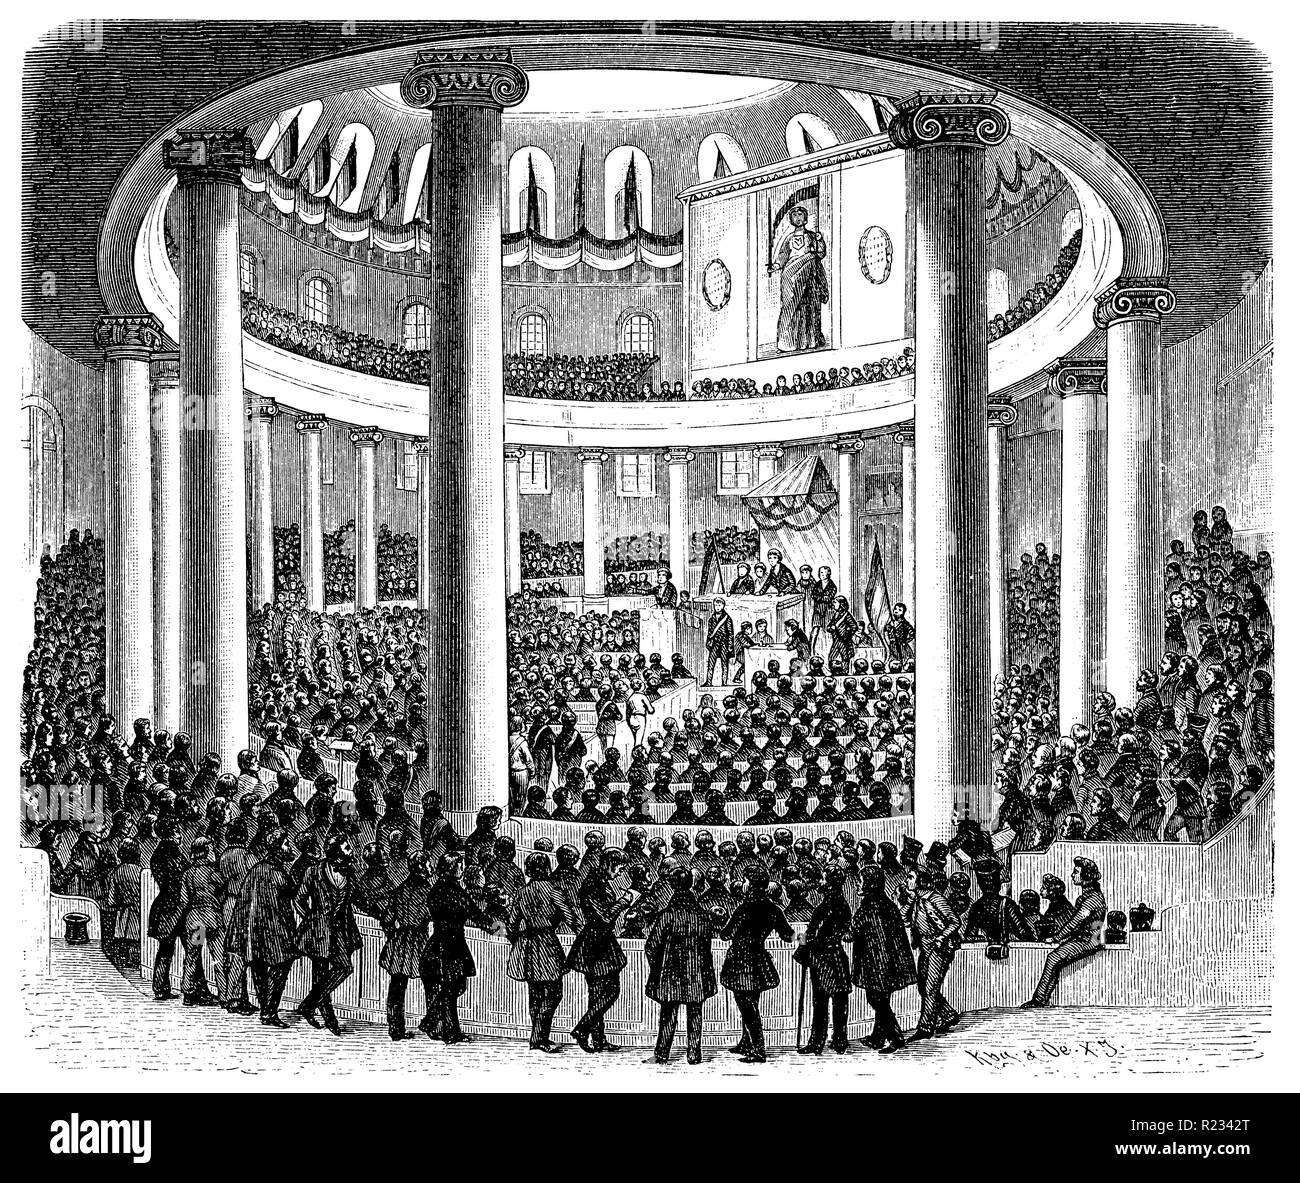 Meeting of the preparatory parliament in the Paulskirche in Frankfurt a.M., after a representation of the Leipziger Illustrierte, vintage 1848, Kbg KOe  1899 - Stock Image